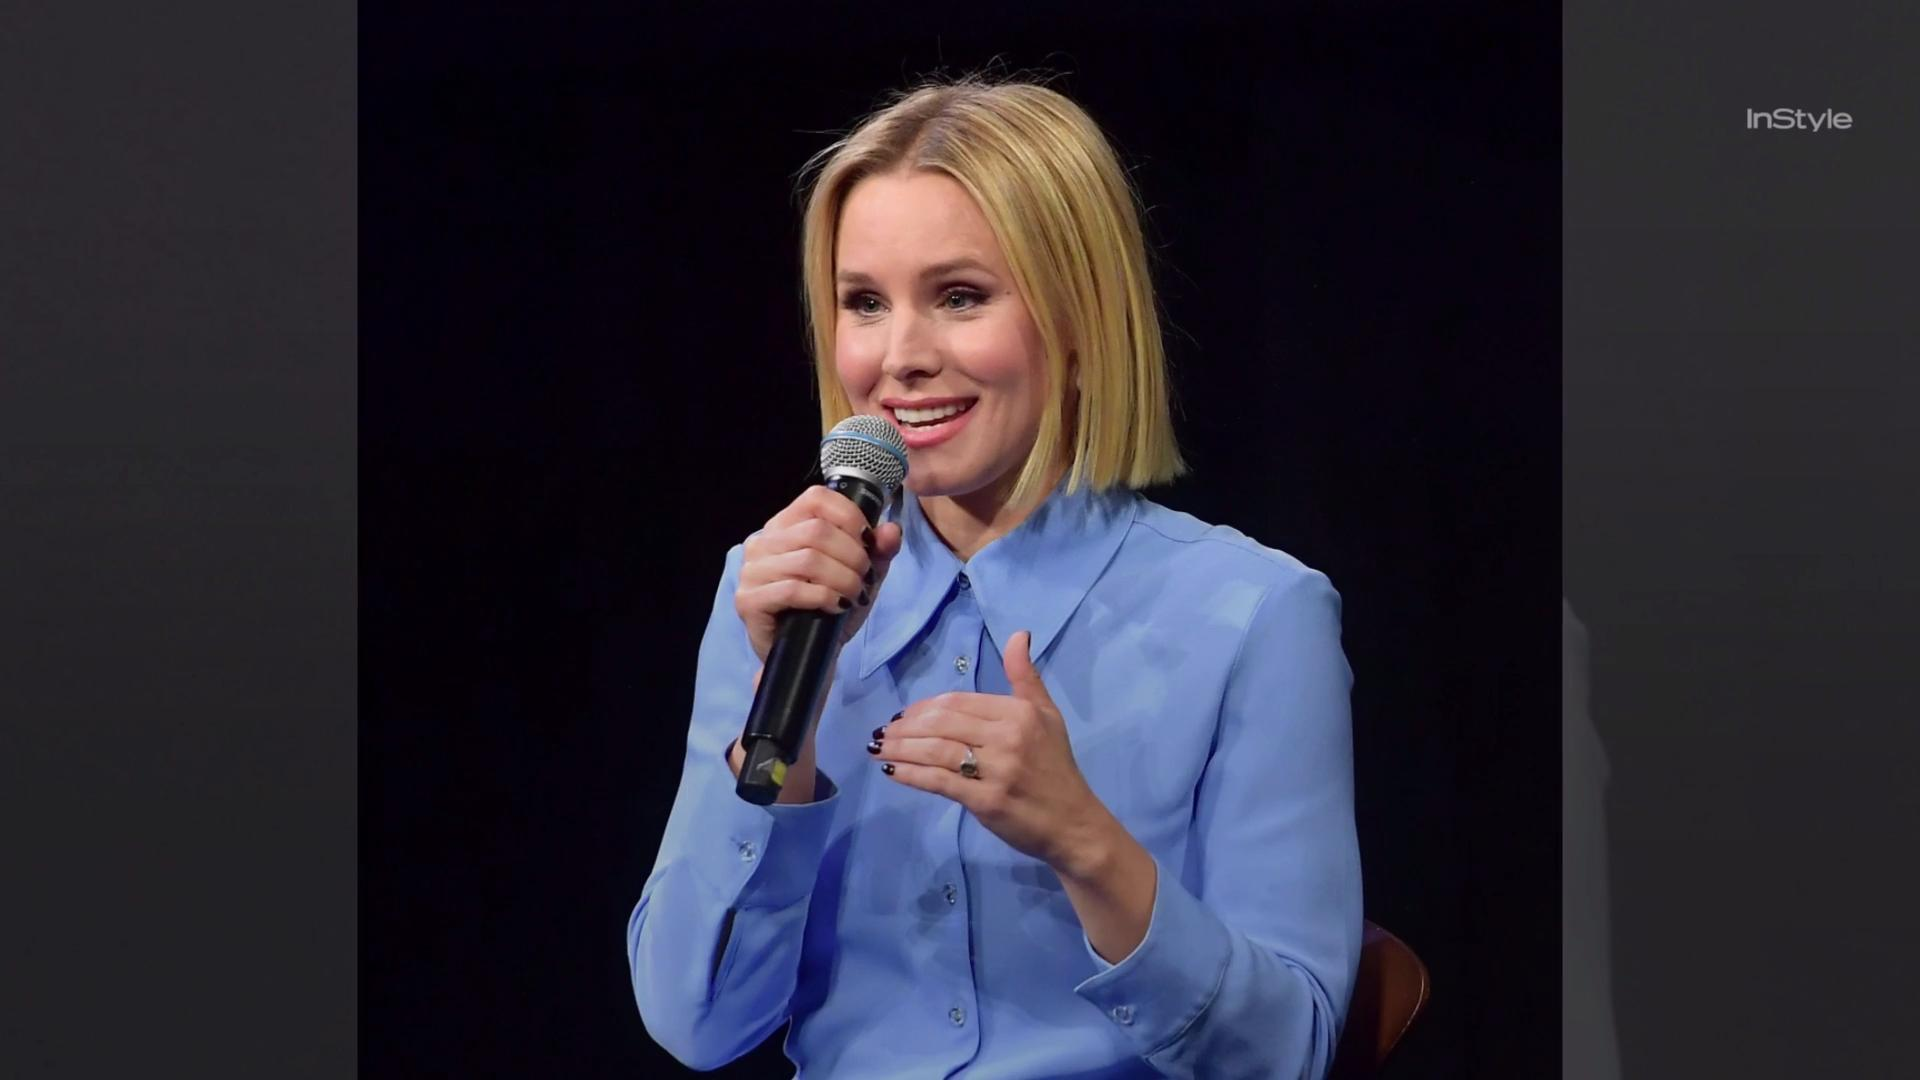 Kristen Bell Debuts A Blunt Bob Haircut Instyle